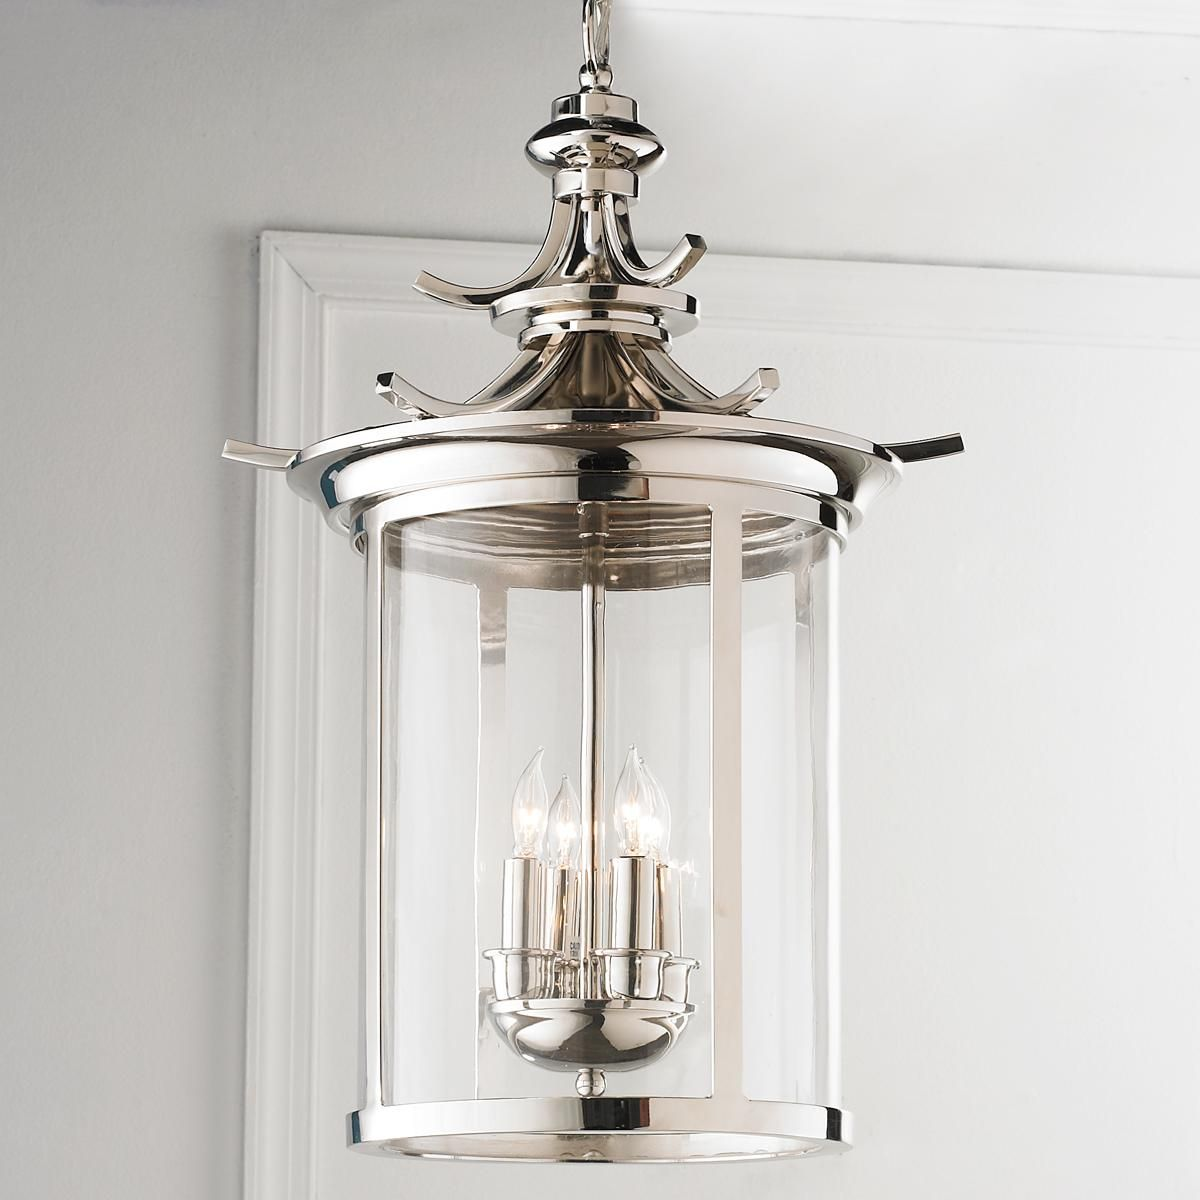 Polished Nickel Pagoda Lantern With Its Finish And Shape A Couple Of Dining Room LightingBathroom